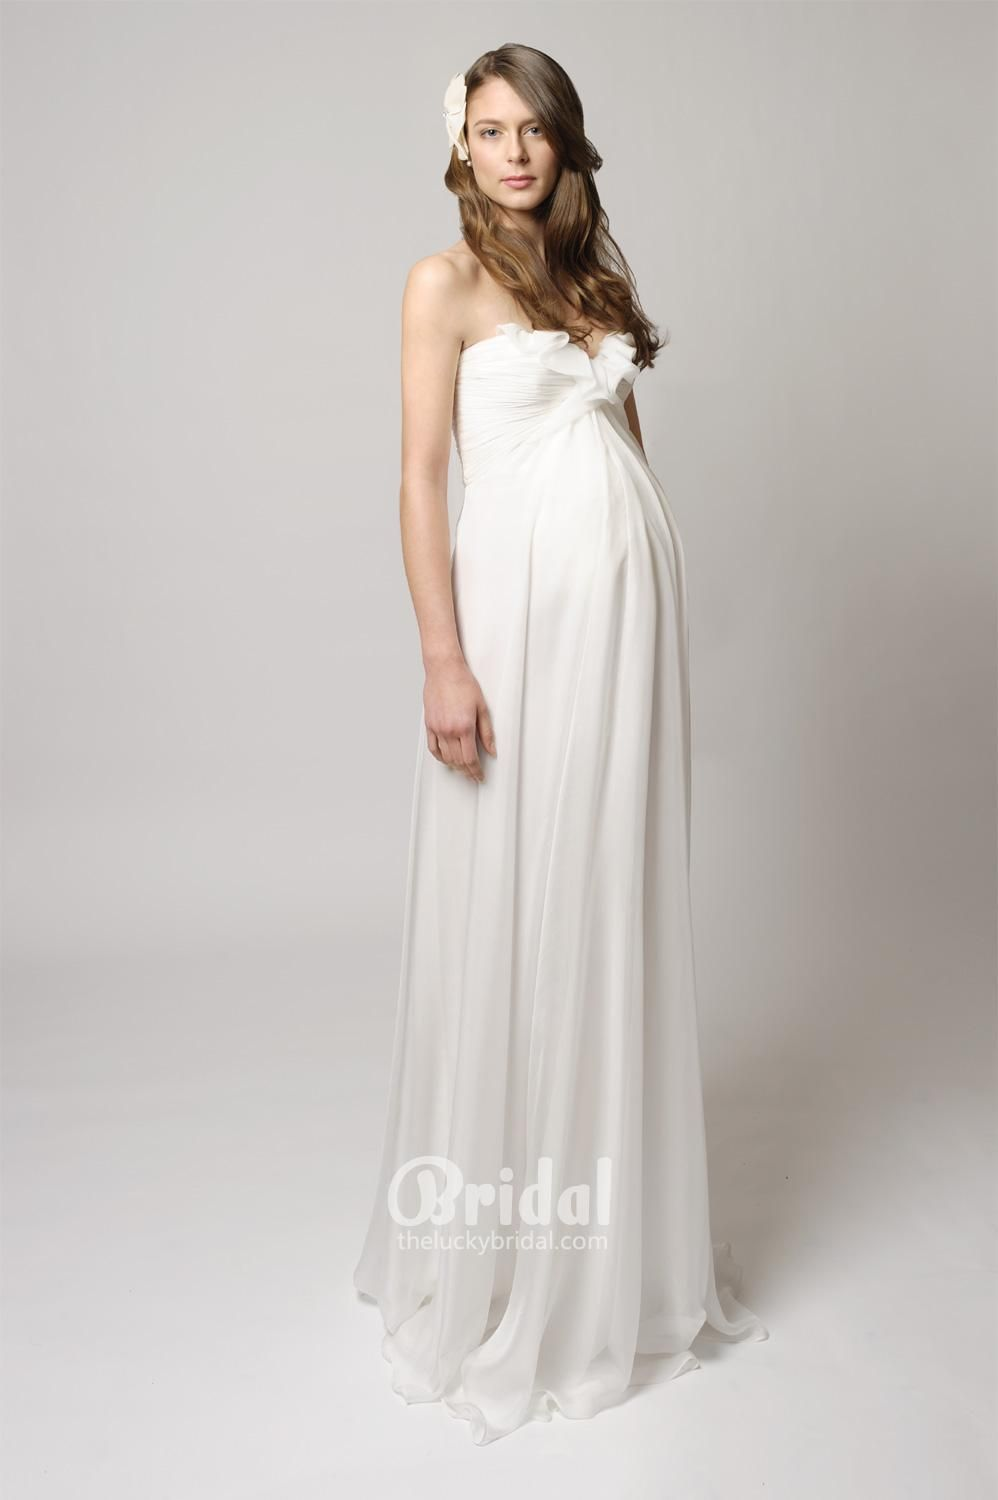 Strapless ruched chiffon maternity bridal dress with front ruffle strapless ruched chiffon maternity bridal dress with front ruffle neckline ombrellifo Image collections